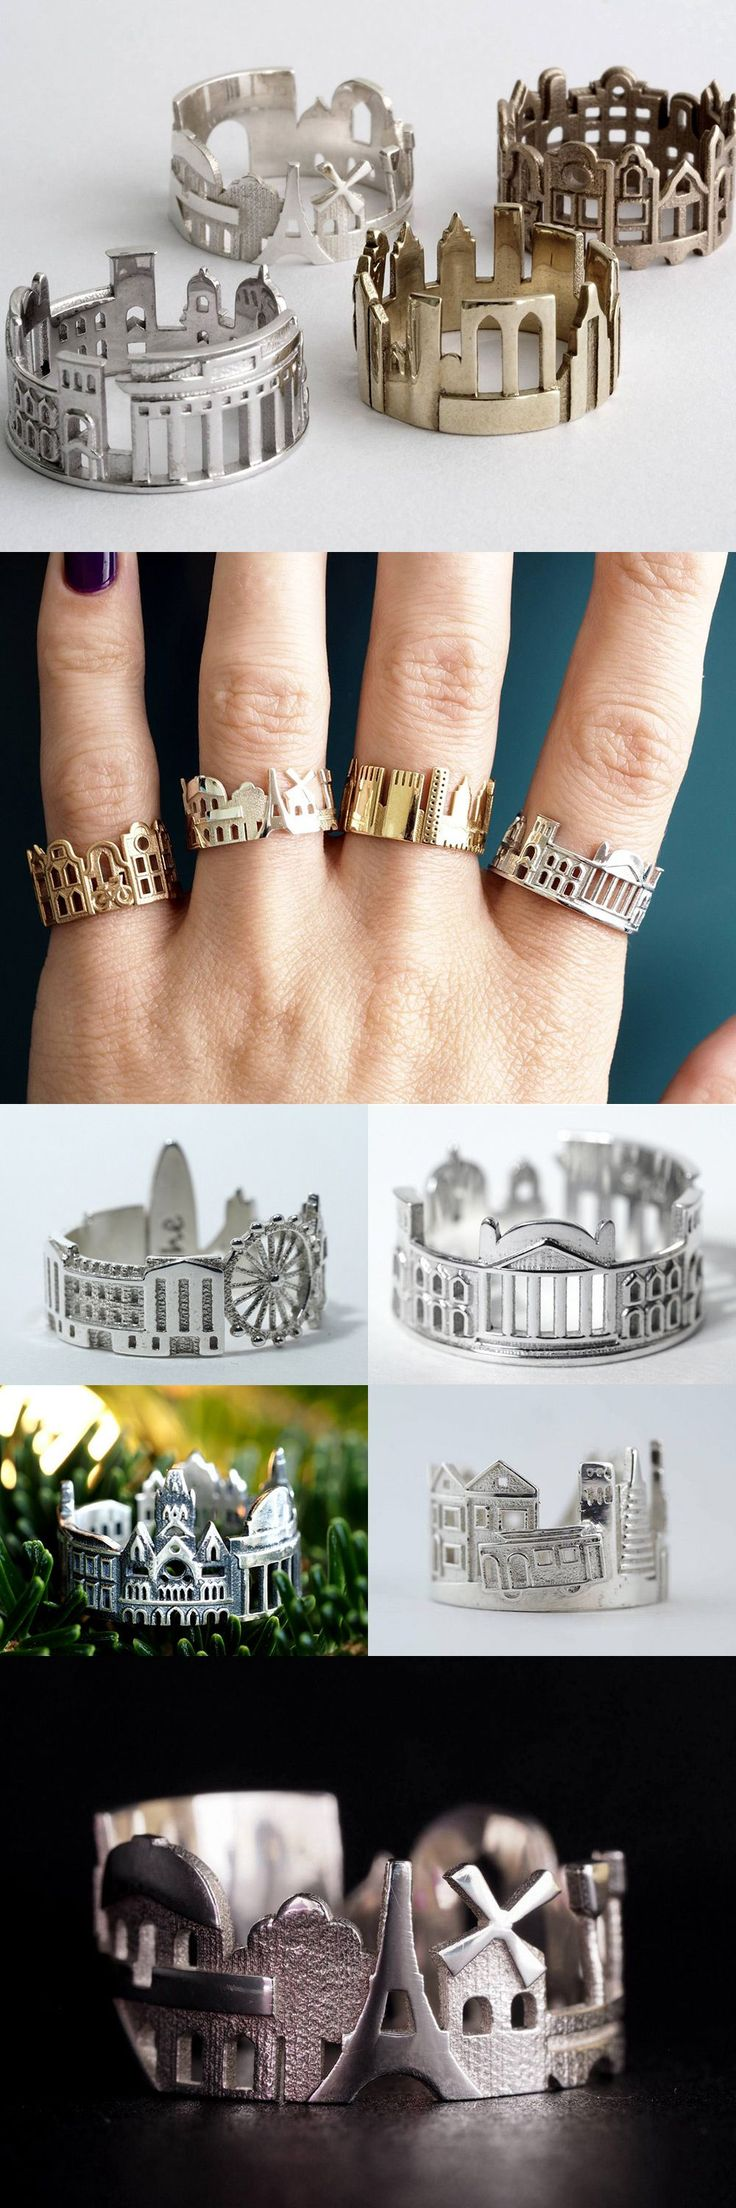 http://rubies.work/0535-sapphire-ring/ Cityscape Rings Feature Architectural Highlights of Iconic Cities